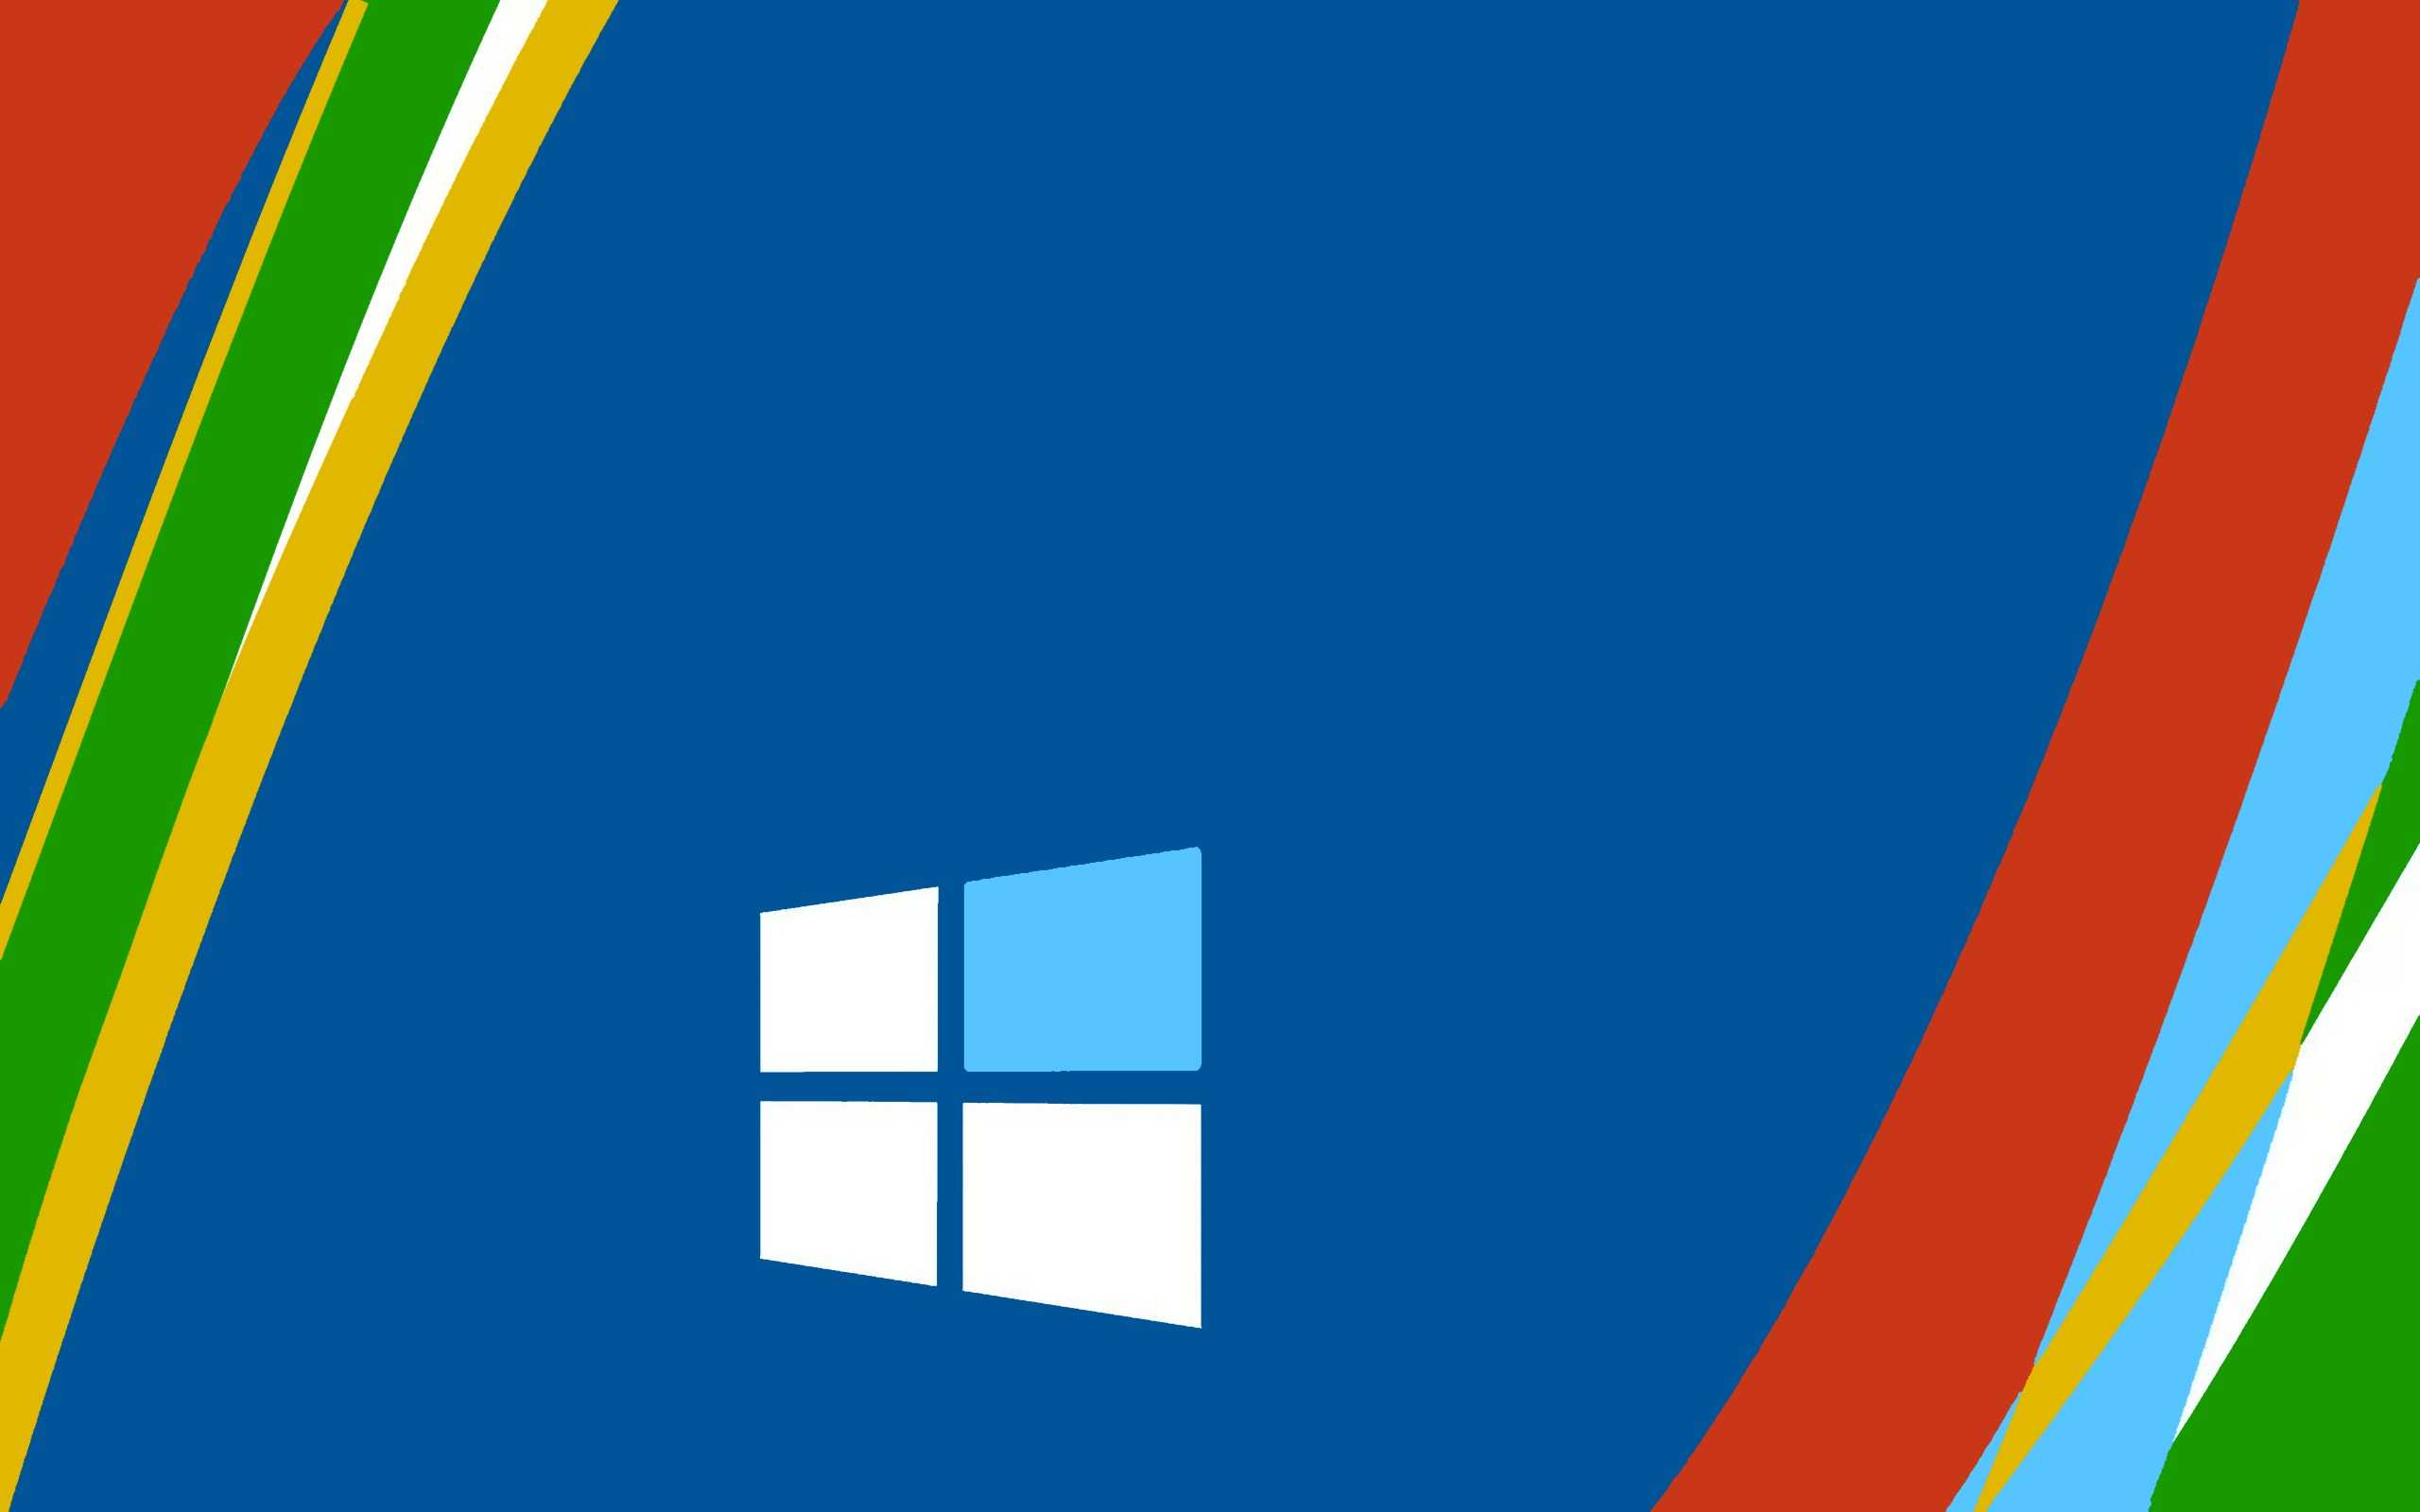 Official windows 10 wallpaper wallpapersafari for Windows official